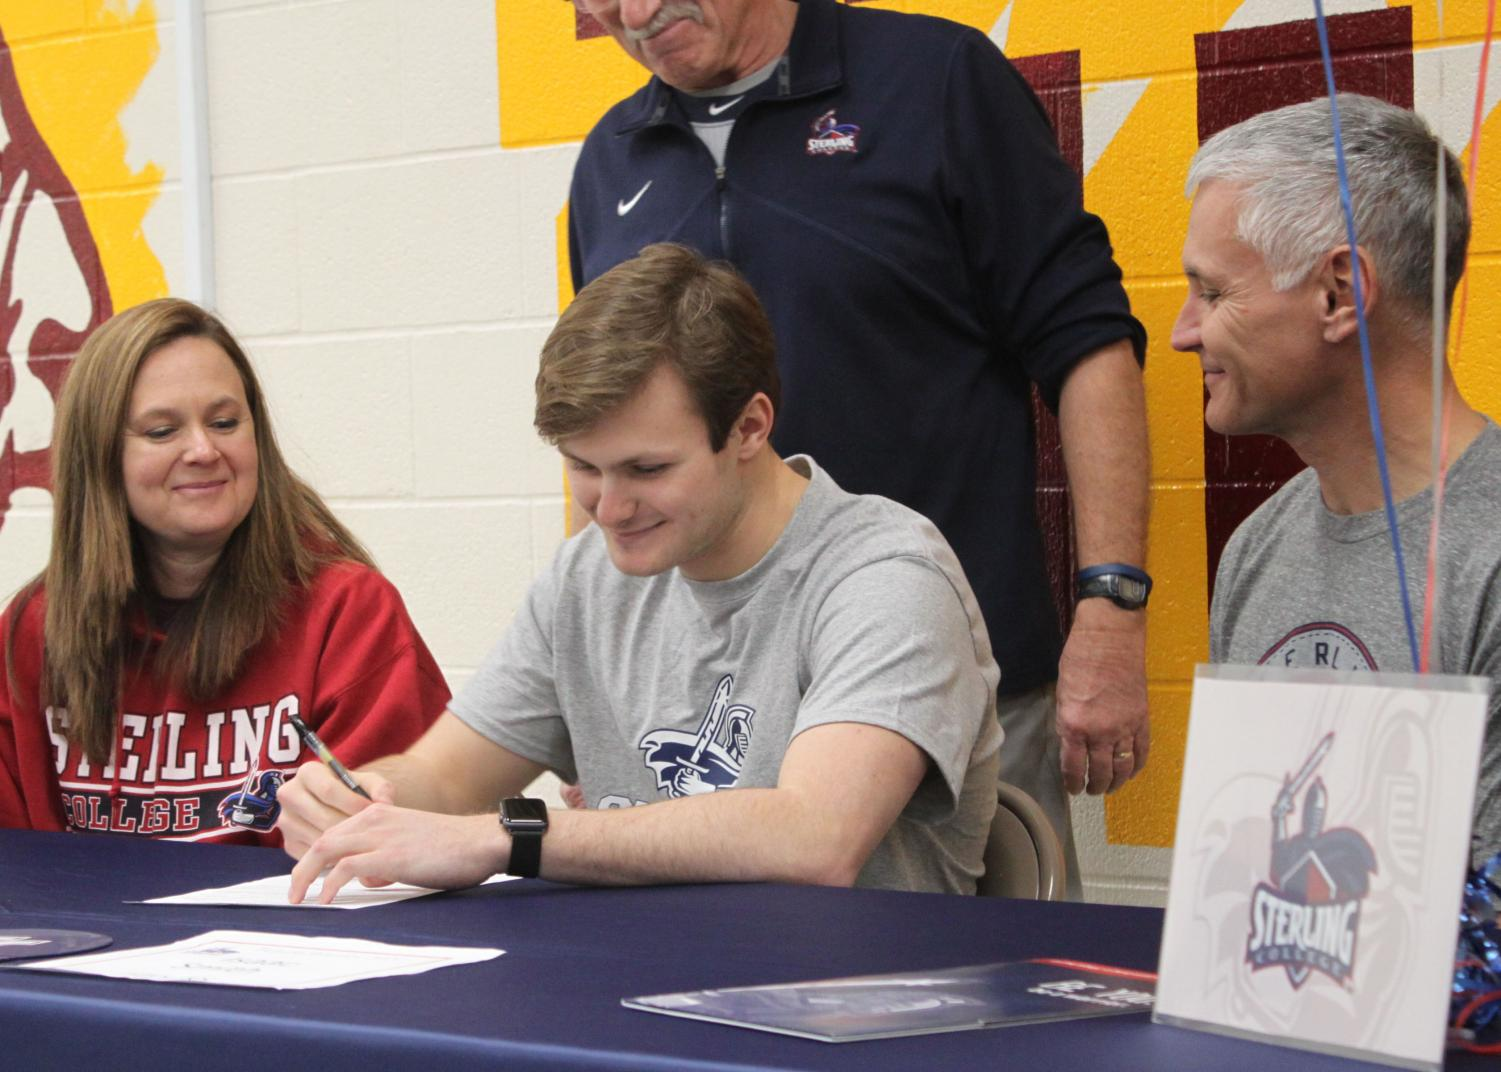 Senior Isaac Smith signed to Sterling College after hearing about it through a colleague, also there for swimming.